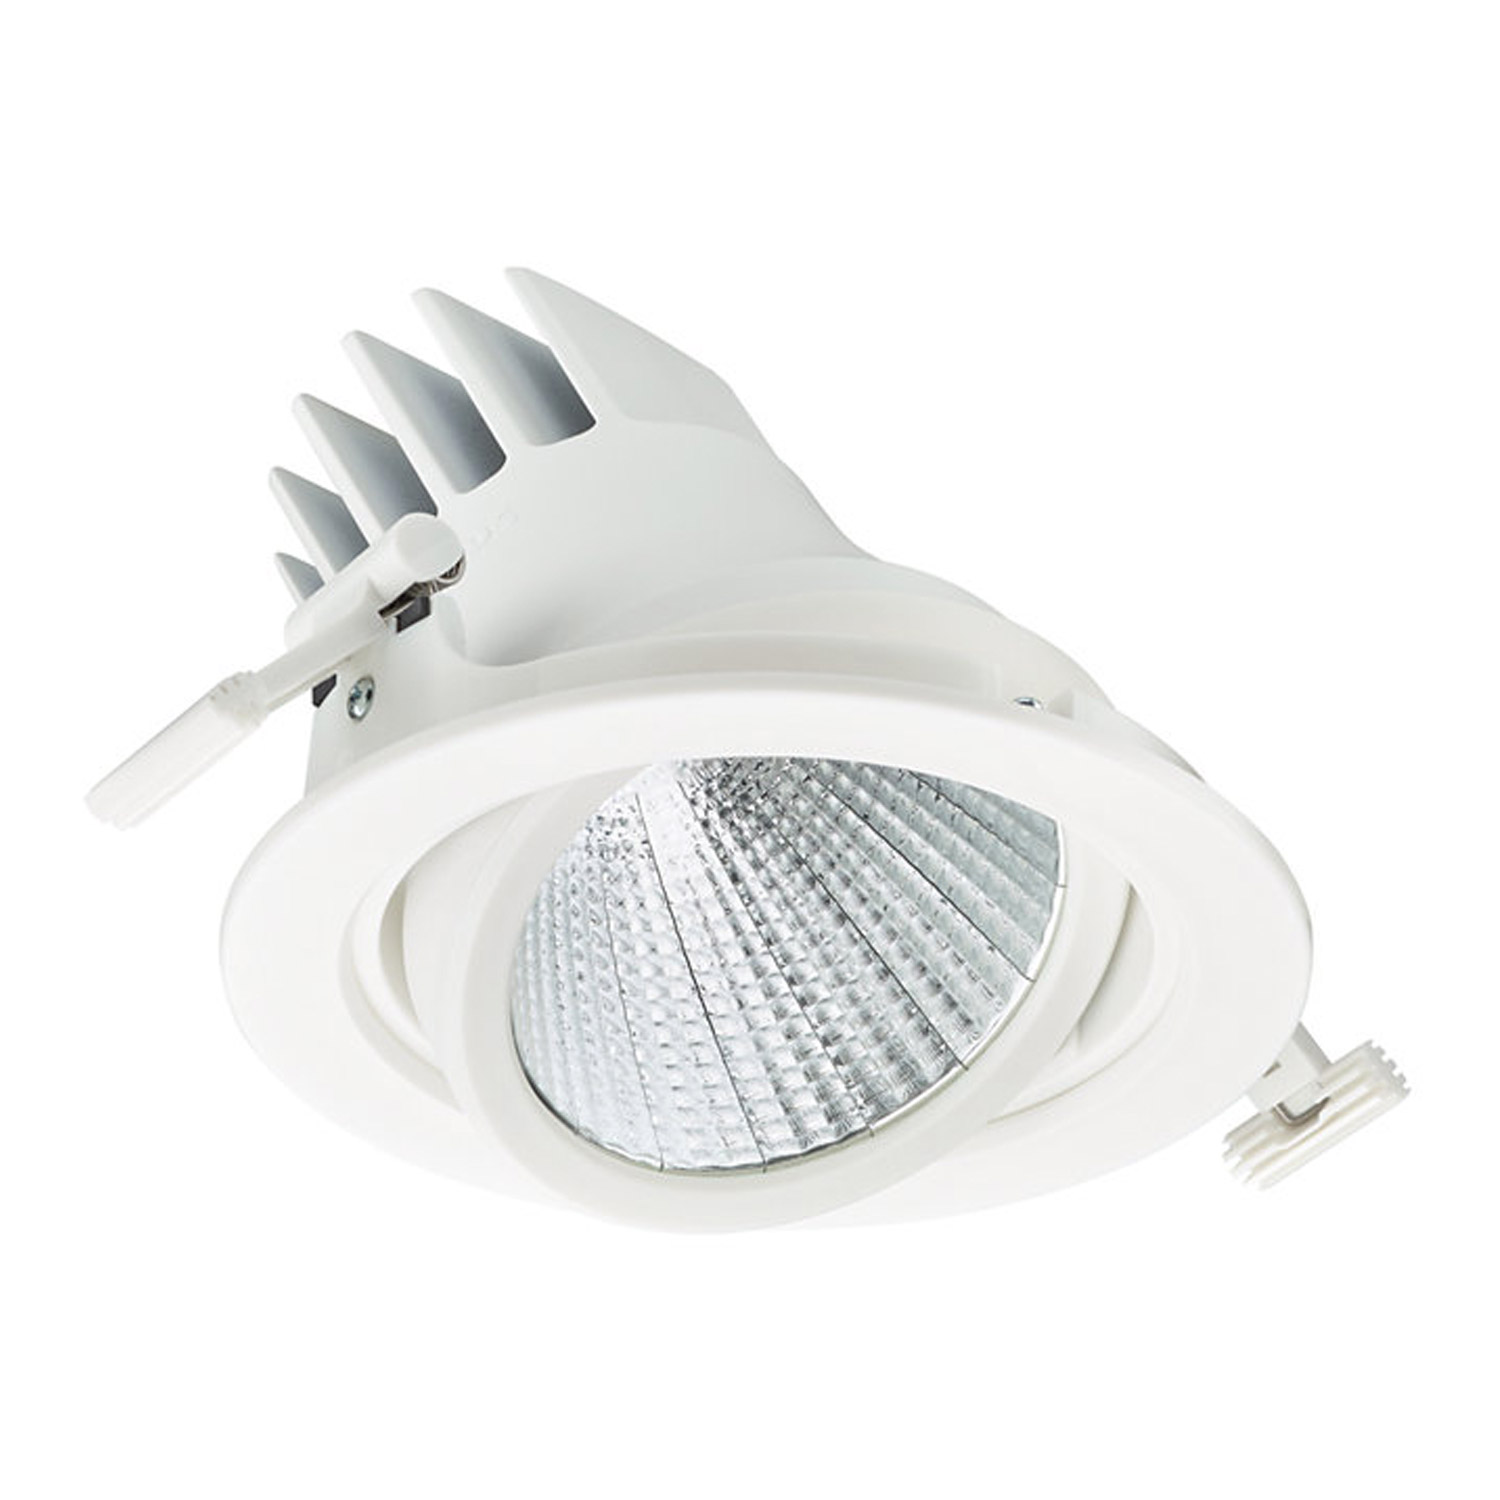 Philips LuxSpace Accent Performance LED Spot RS781B 33W 827 3500lm - Extra Warm White